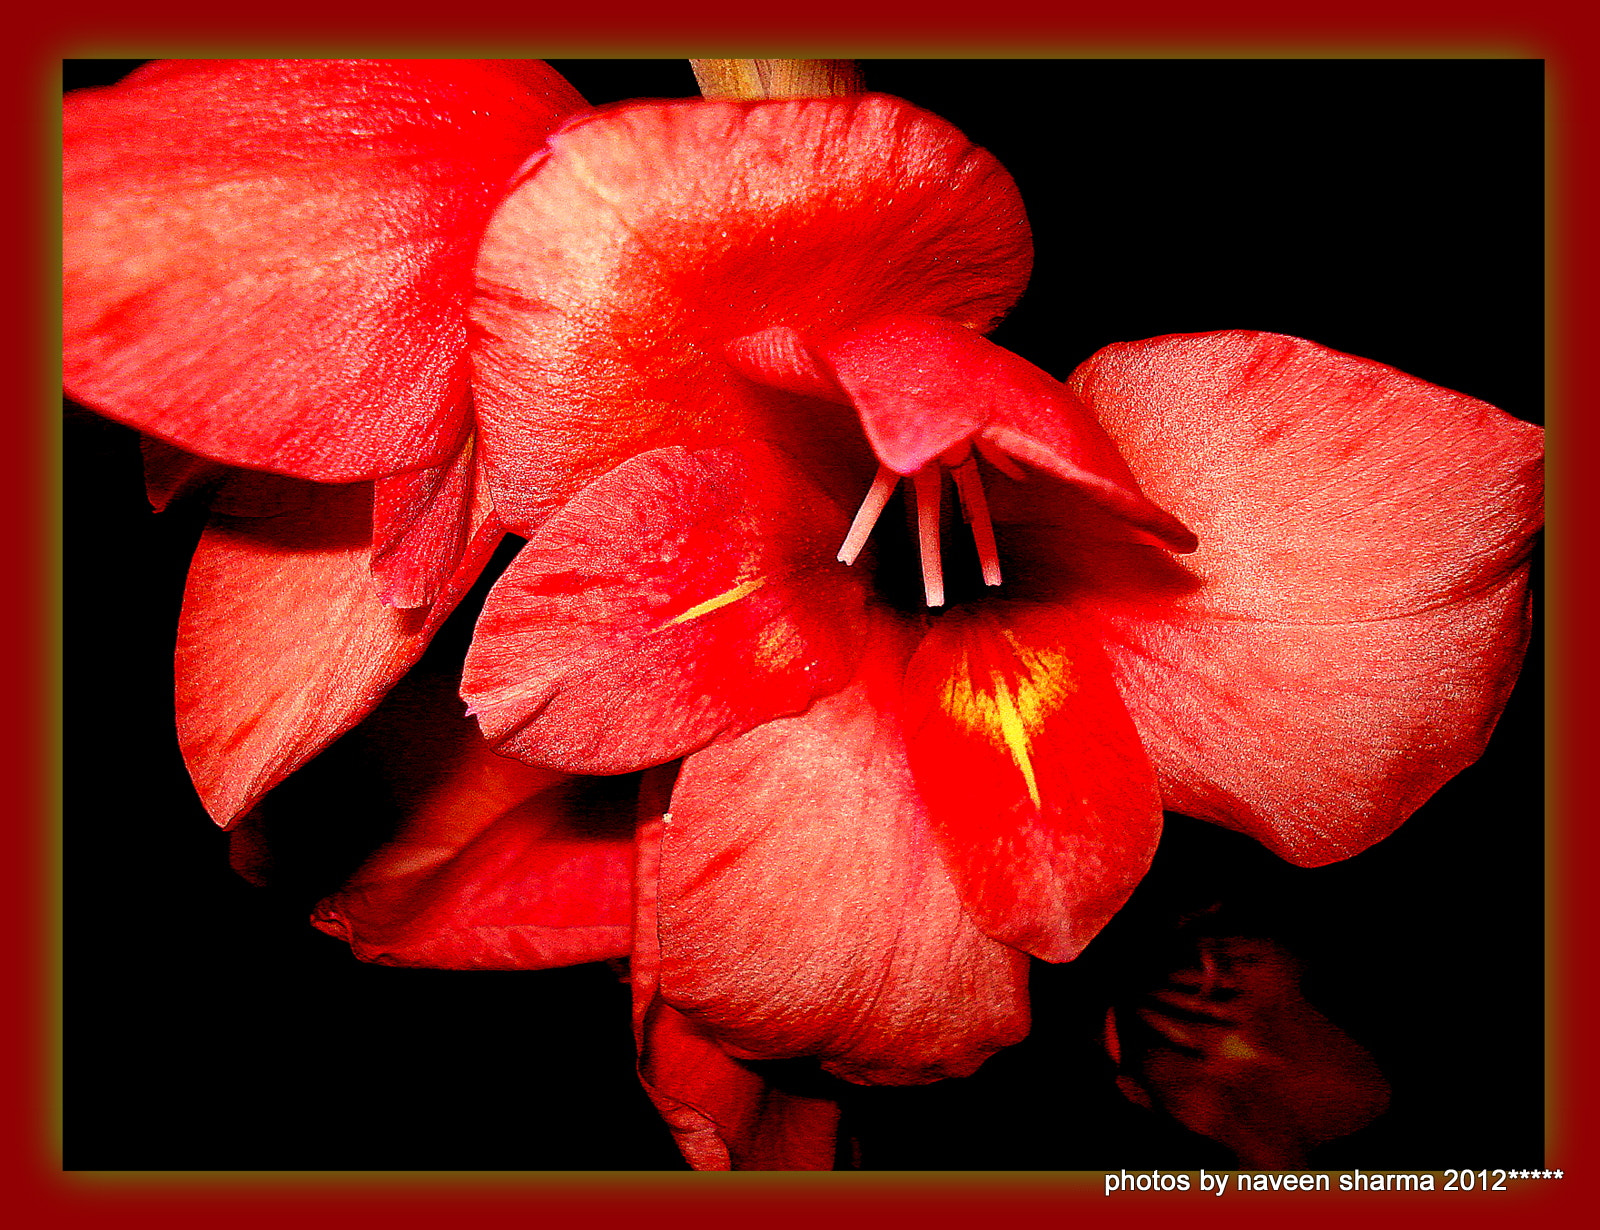 Photograph SUPER MACRO OF GLADIOLUS FLOWER by naveen sharma on 500px